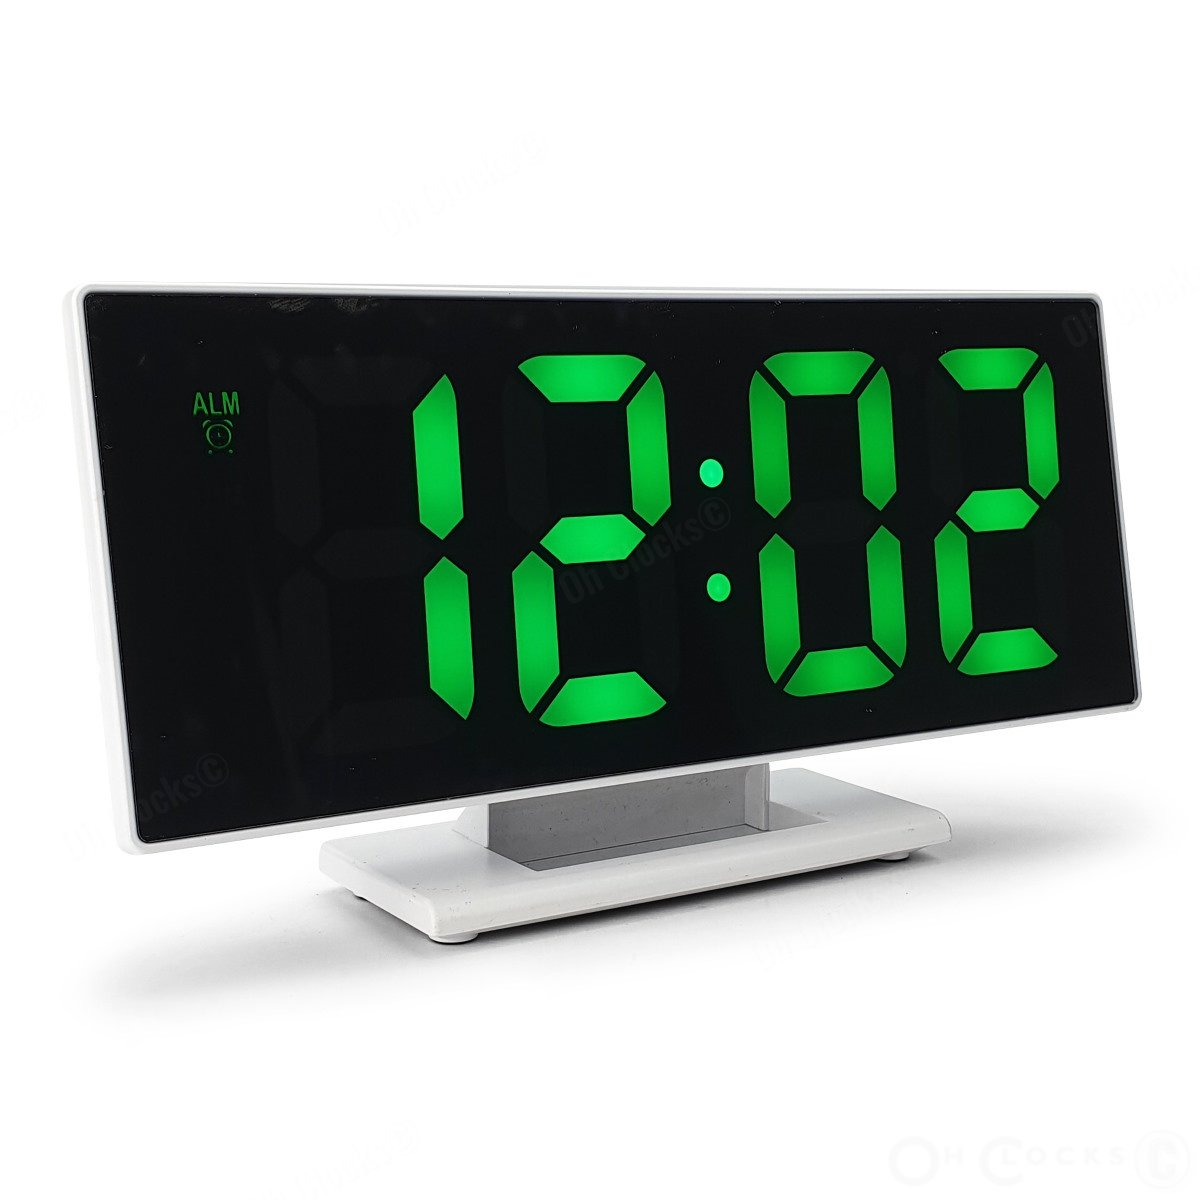 Checkmate Hunter Mirrored Face LCD Alarm Clock Green 19cm VGW 3618 GRE 1